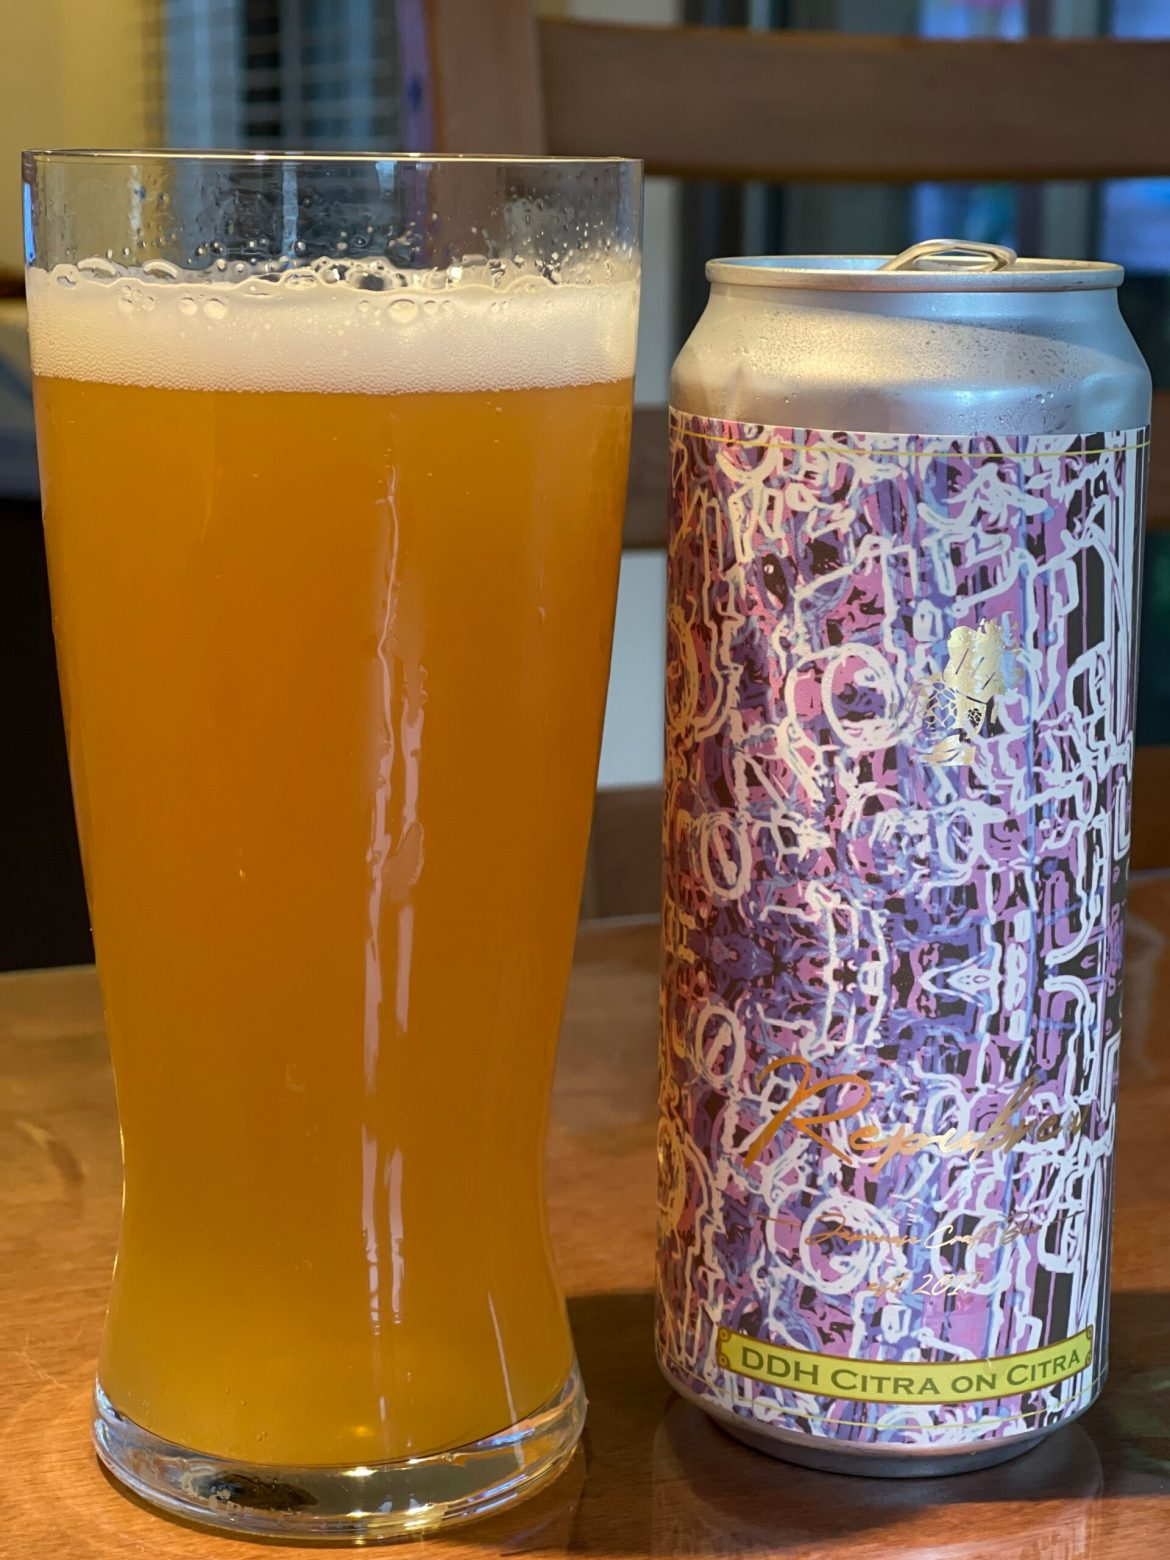 Repubrew DDH Citra on Citra